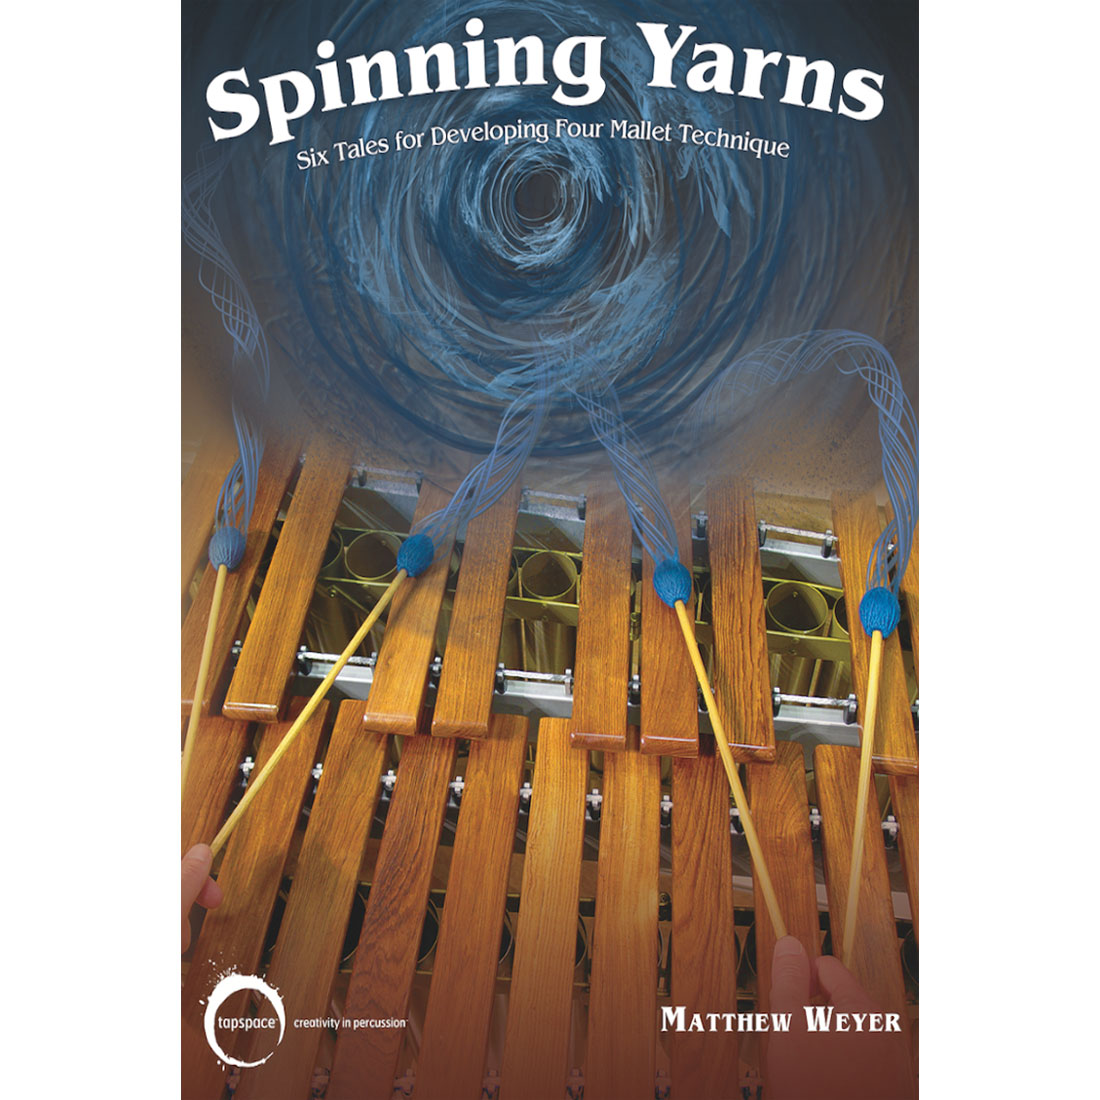 Spinning Yarns by Matthew Weyer